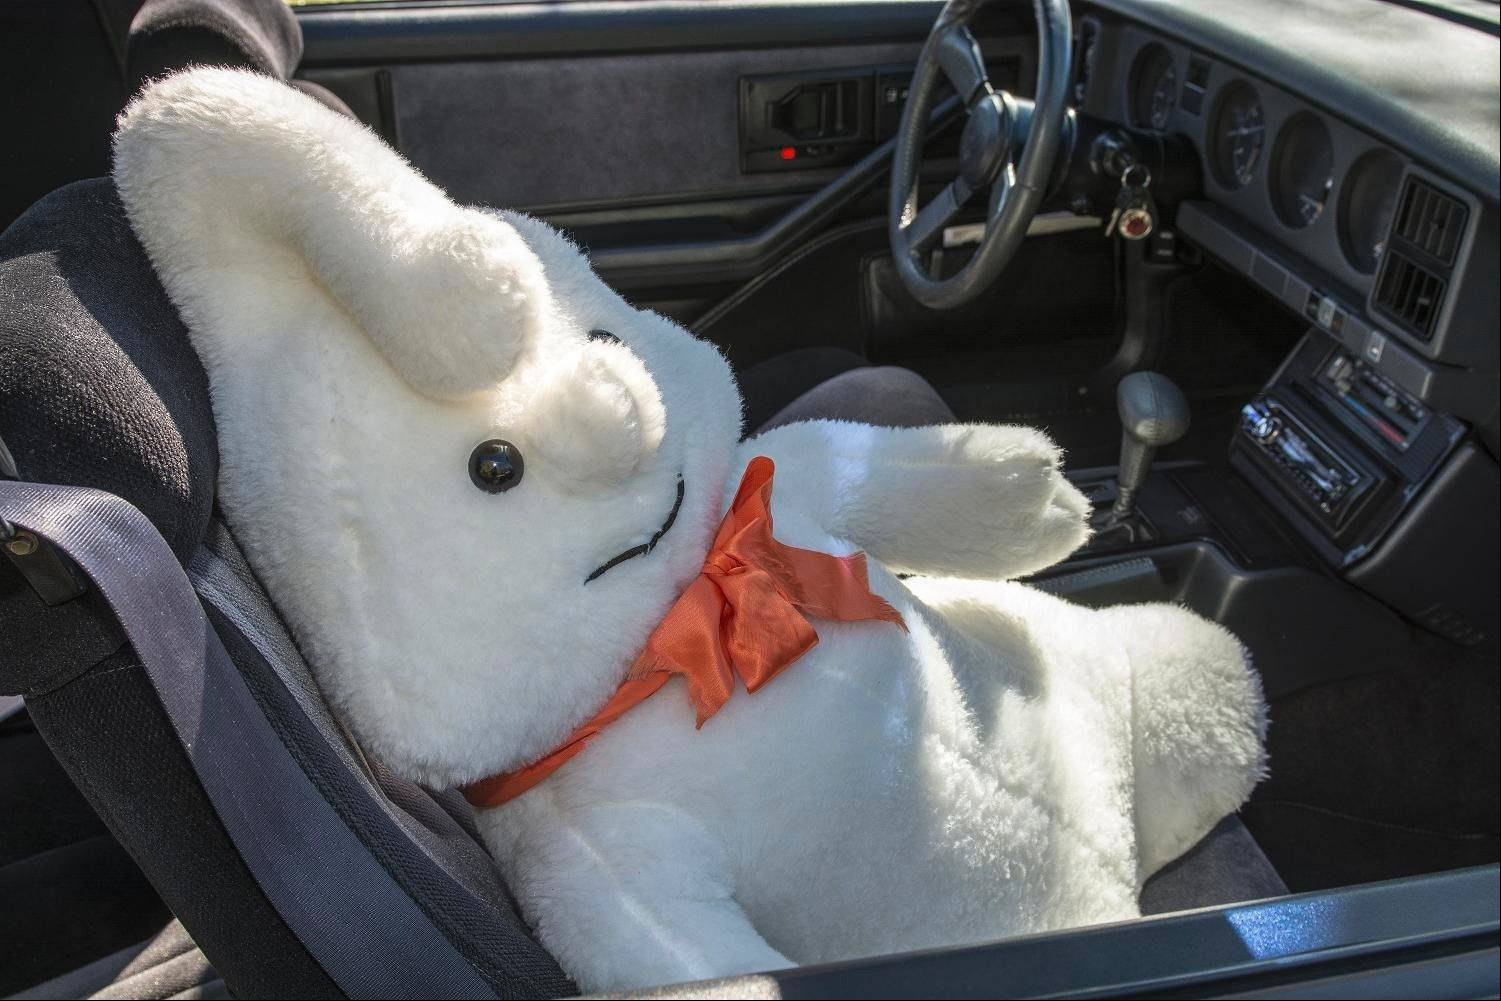 Fritz keeps a friendly looking ghost with him to ride shotgun when he travels to car shows.